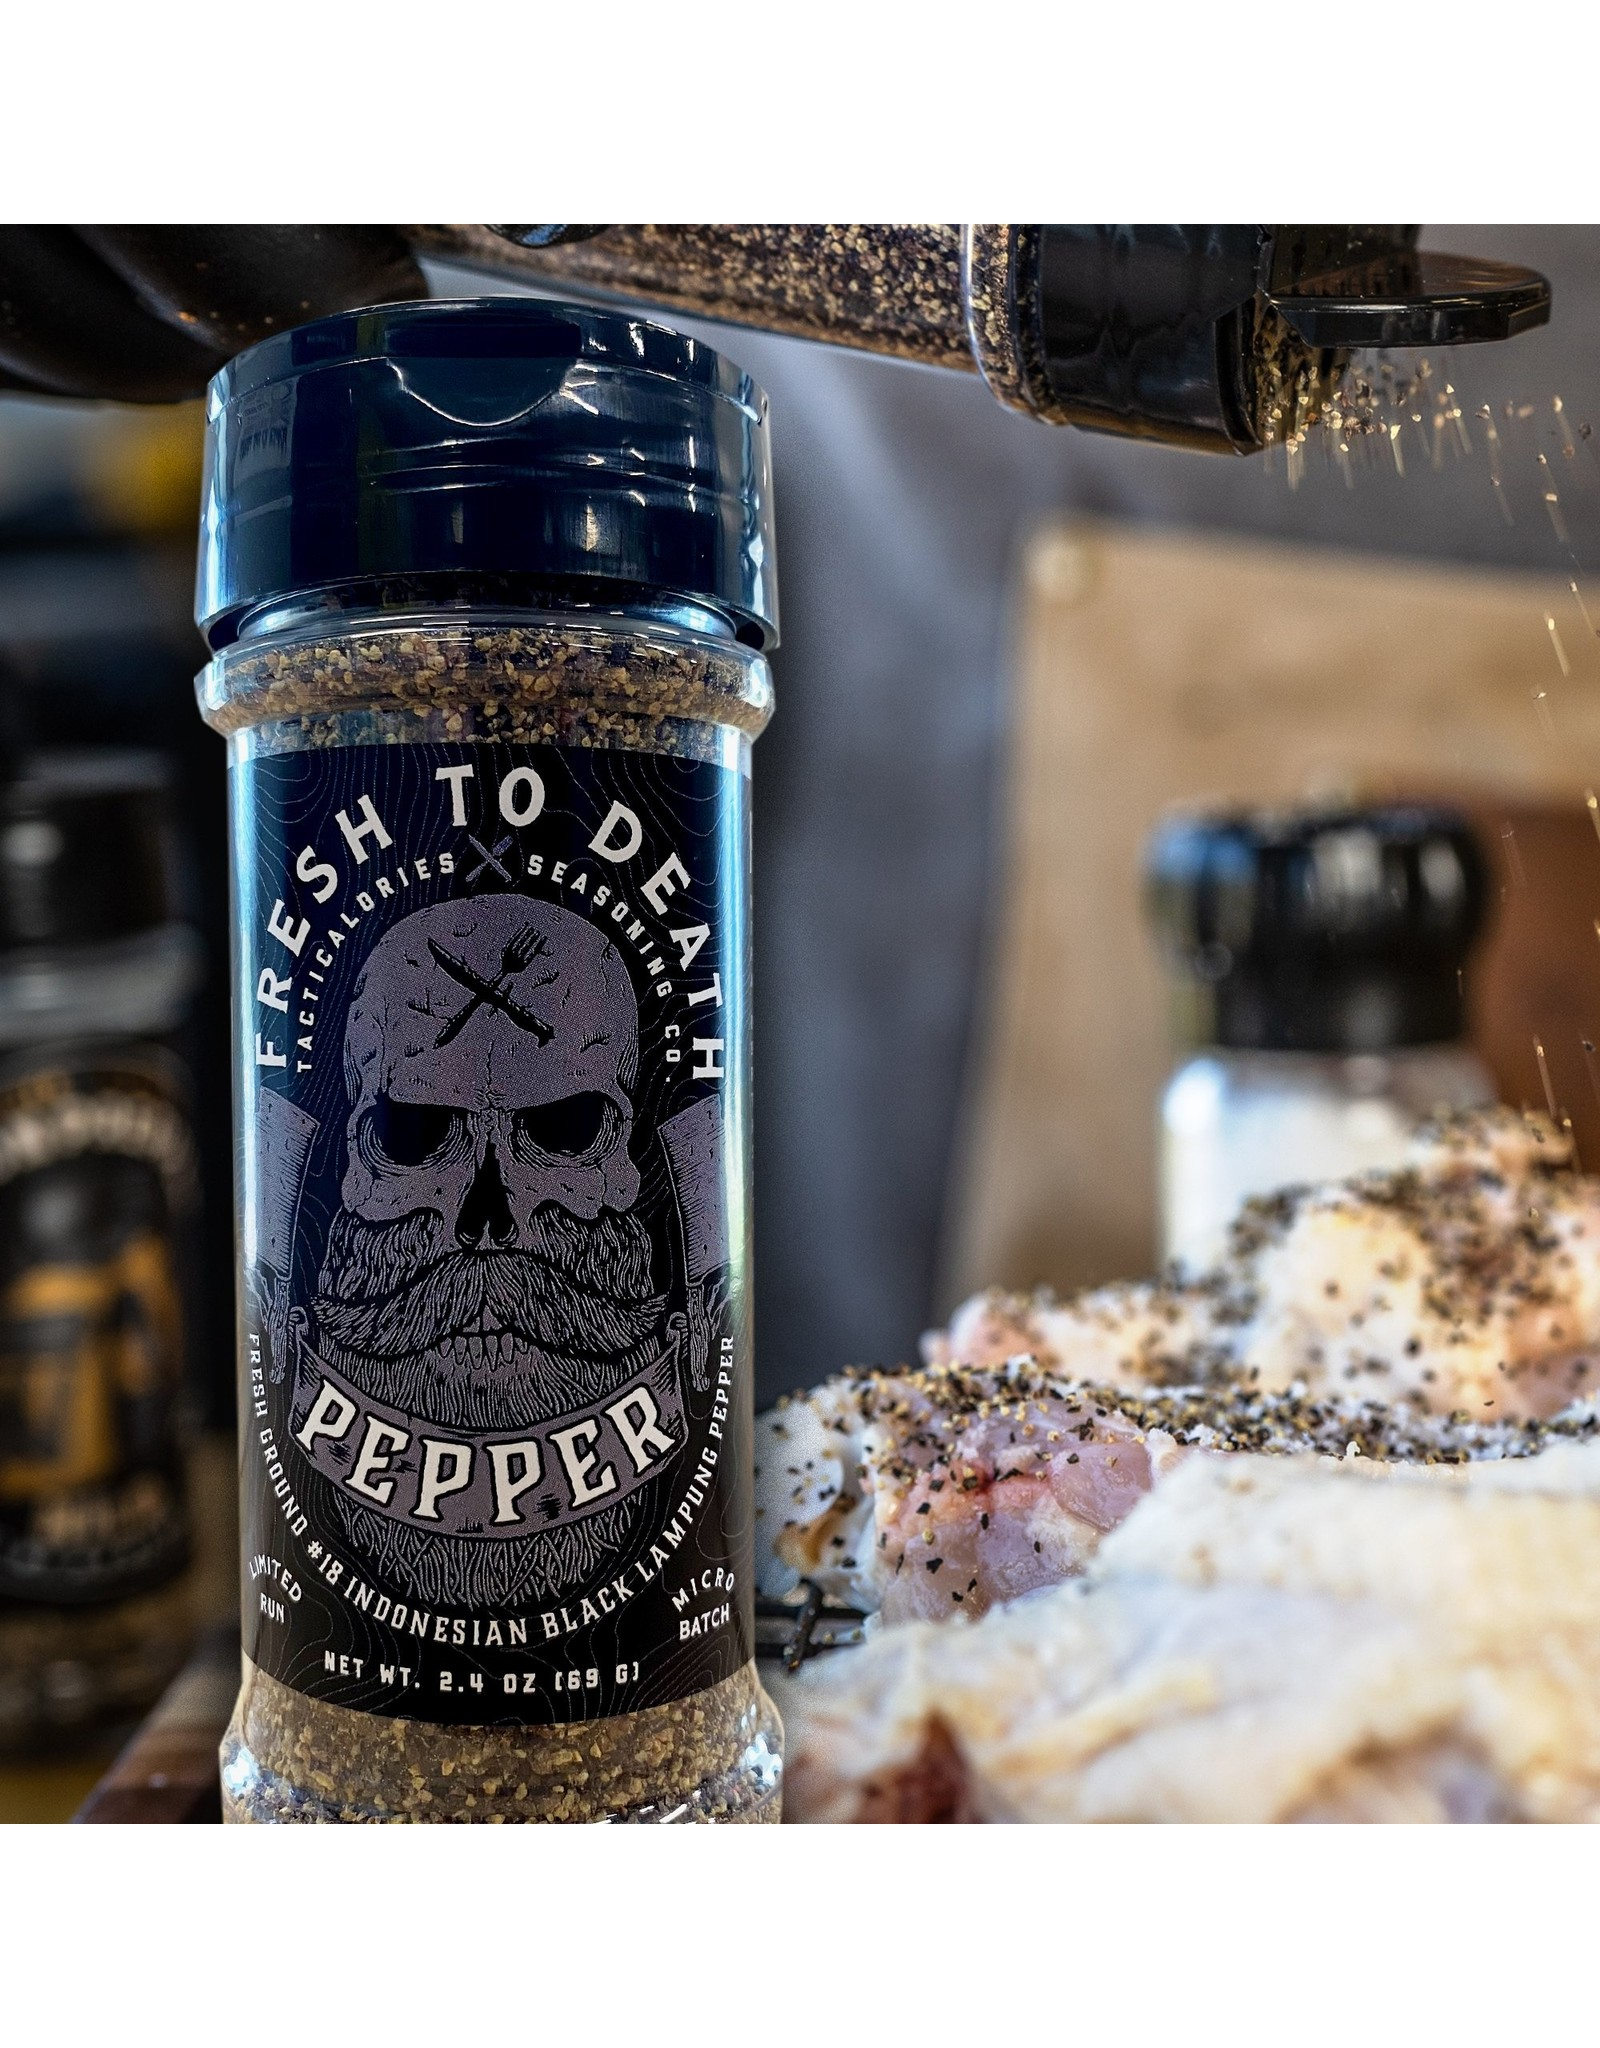 Tacticalories Fresh to Death Pepper